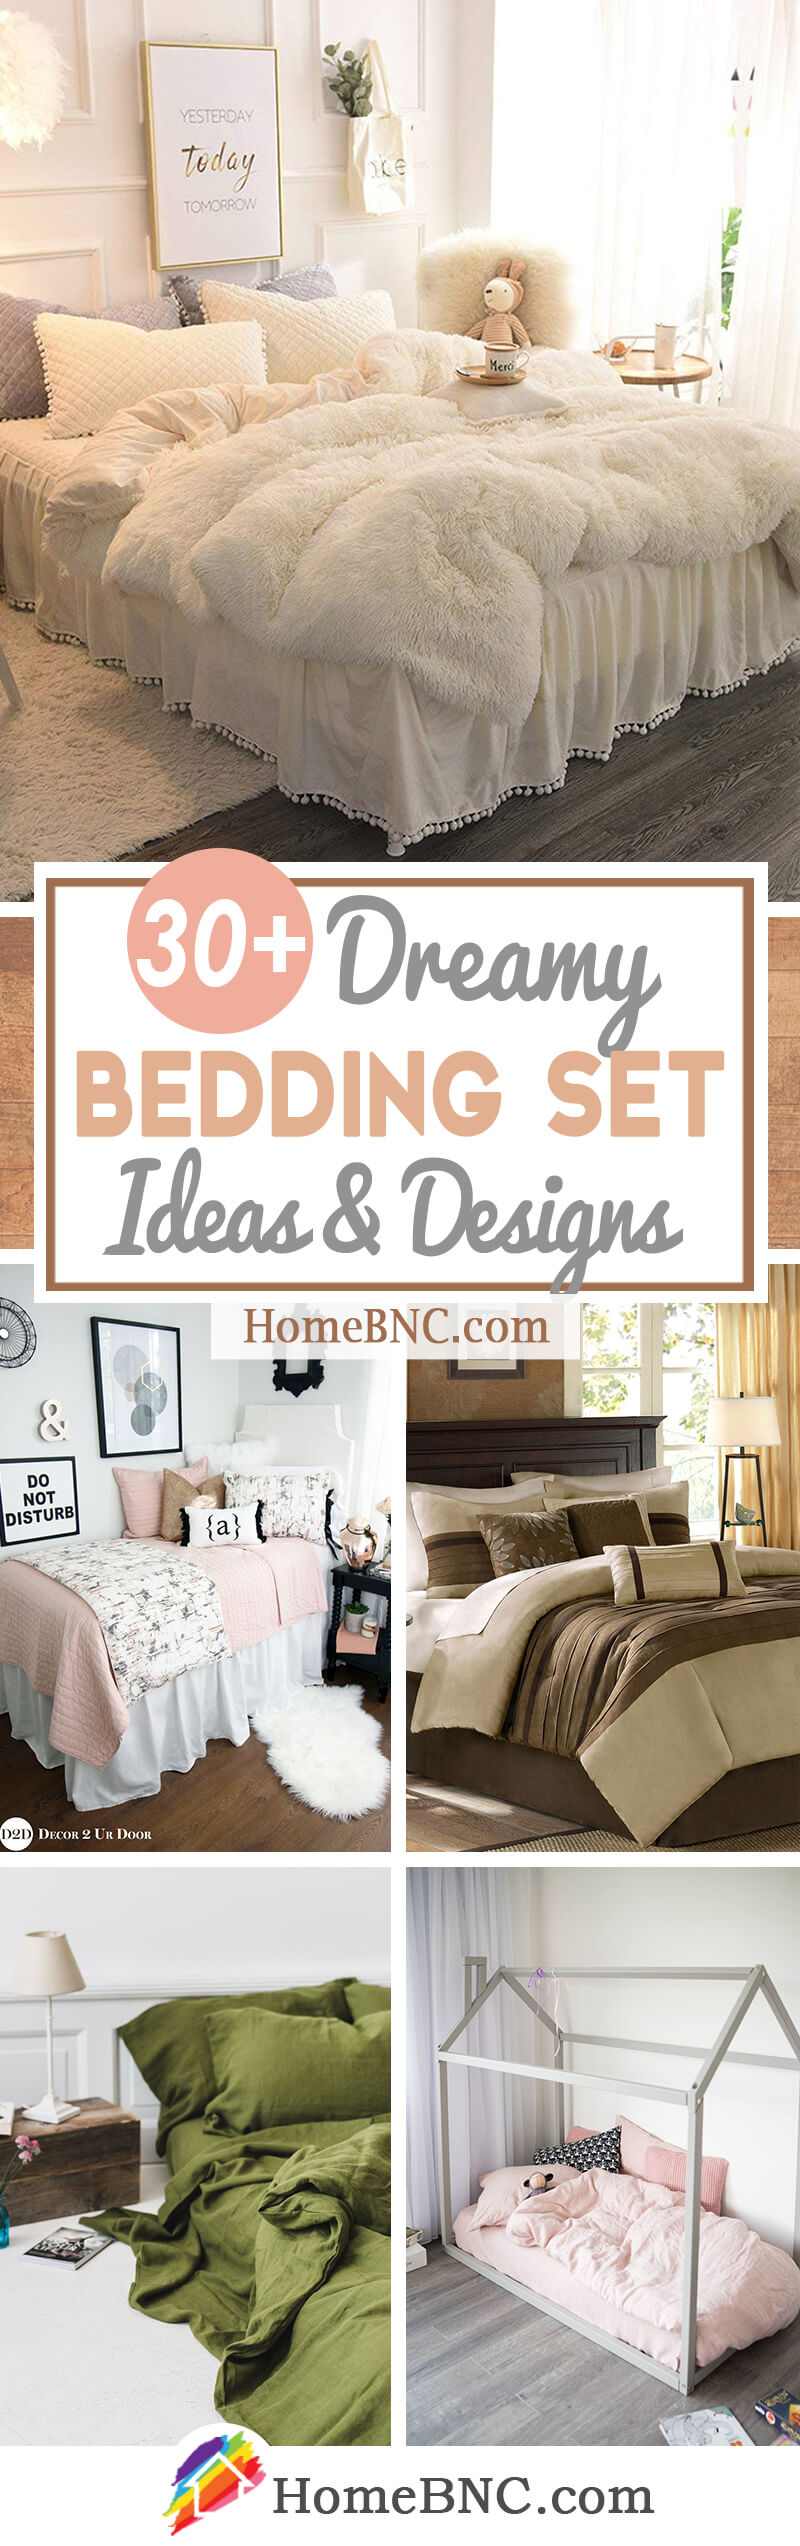 Bedding Set Ideas